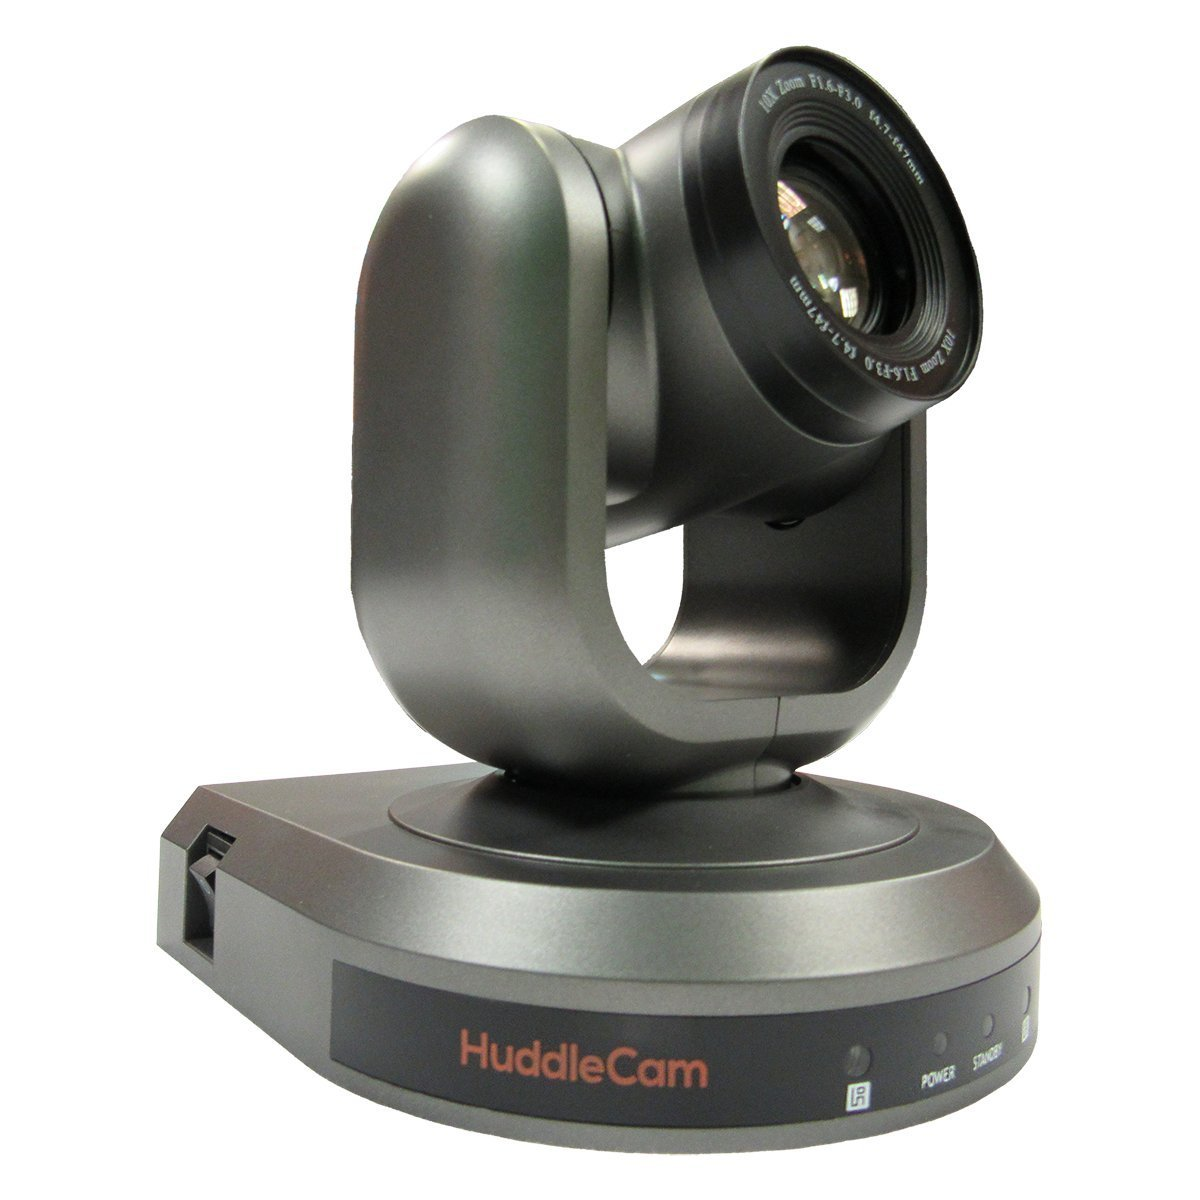 Huddlecam G3 Video Conference Camera Connected Crib